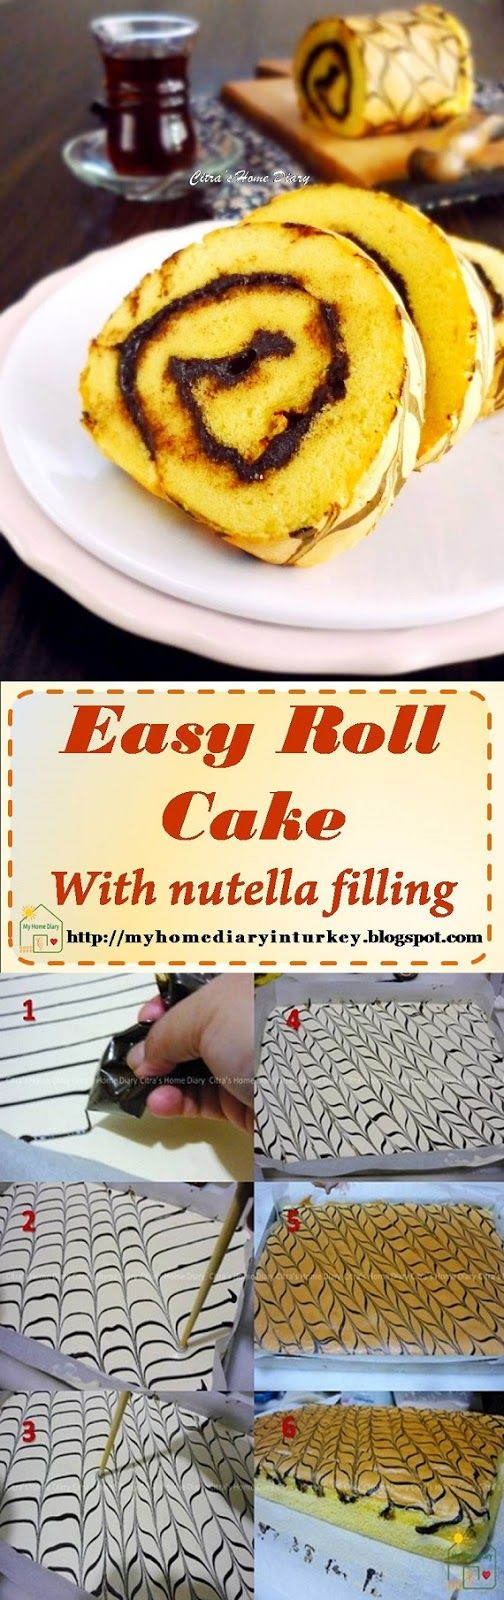 Roll Cake with nutella filling / Bolu gulung irit telur. Çitra's Home Diary